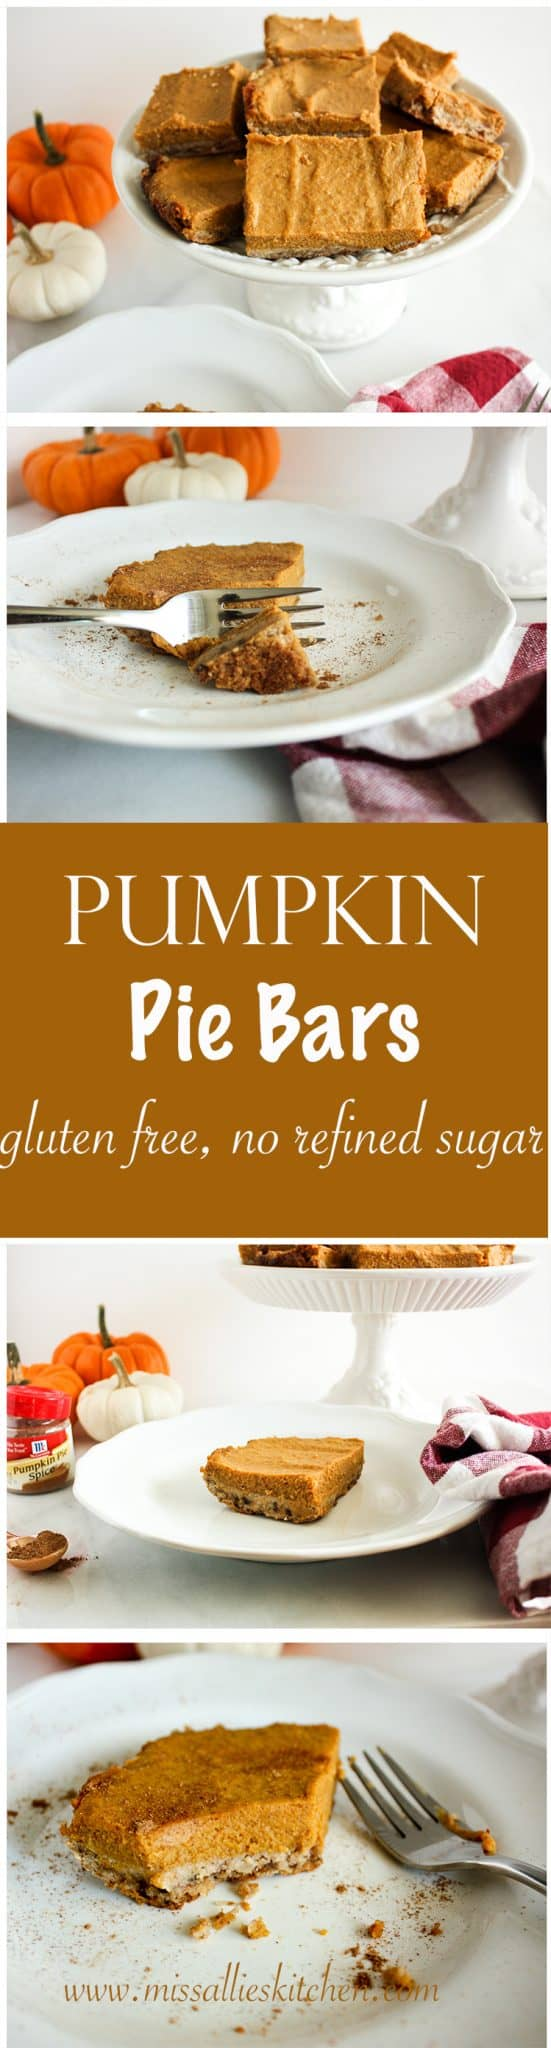 Let's talk Fall because these Pumpkin Pie Bars scream Fall and they are gluten free with no refined sugars.